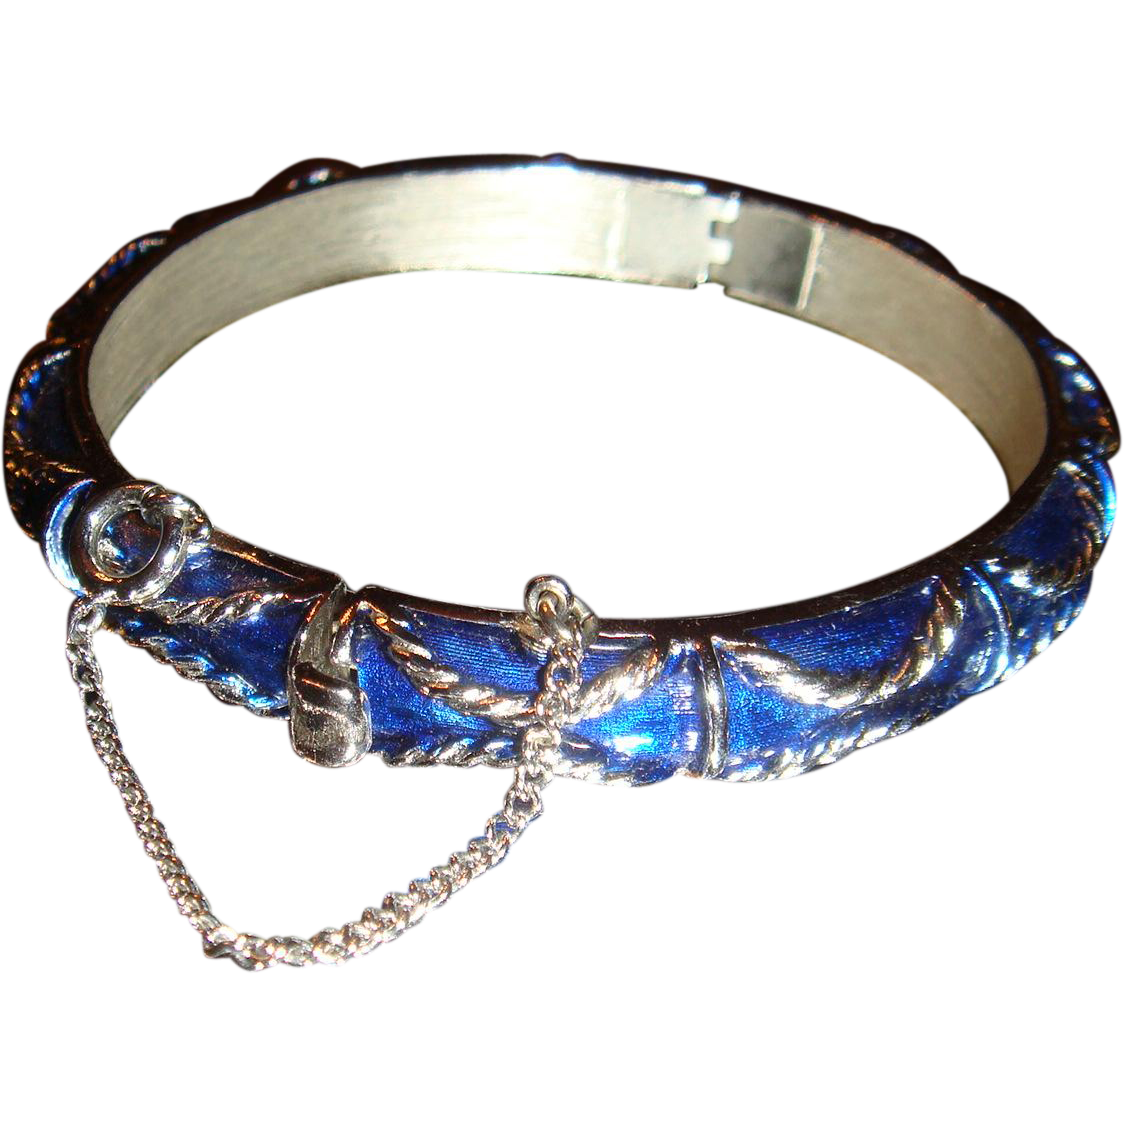 Vintage Trifari Hinged Cobalt Blue Enameled Bracelet With Safety Chain Braided Design